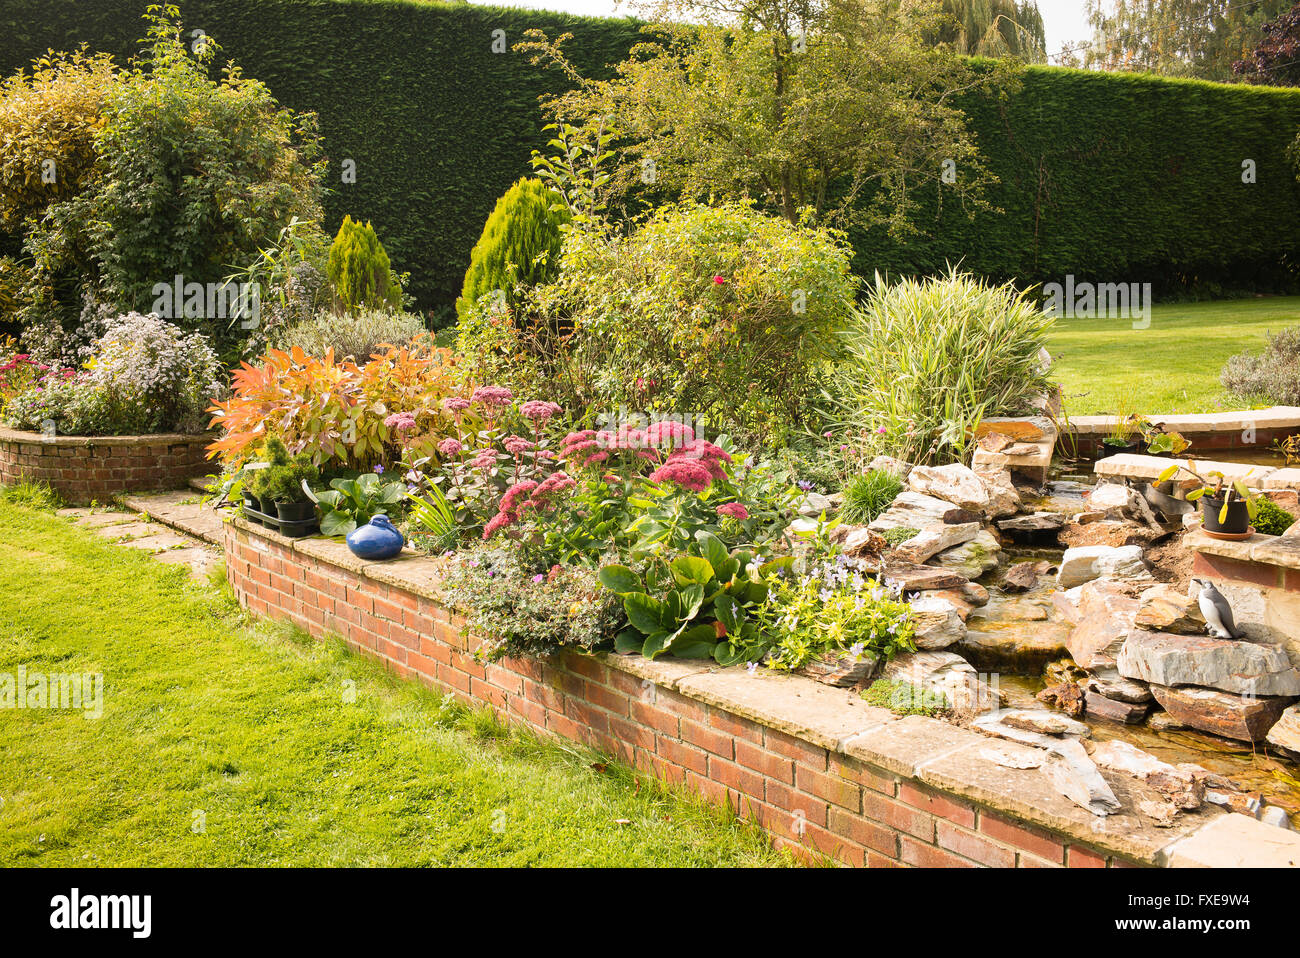 Dorable Garden Retaining Walls Ideas Ensign - The Wall Art ...